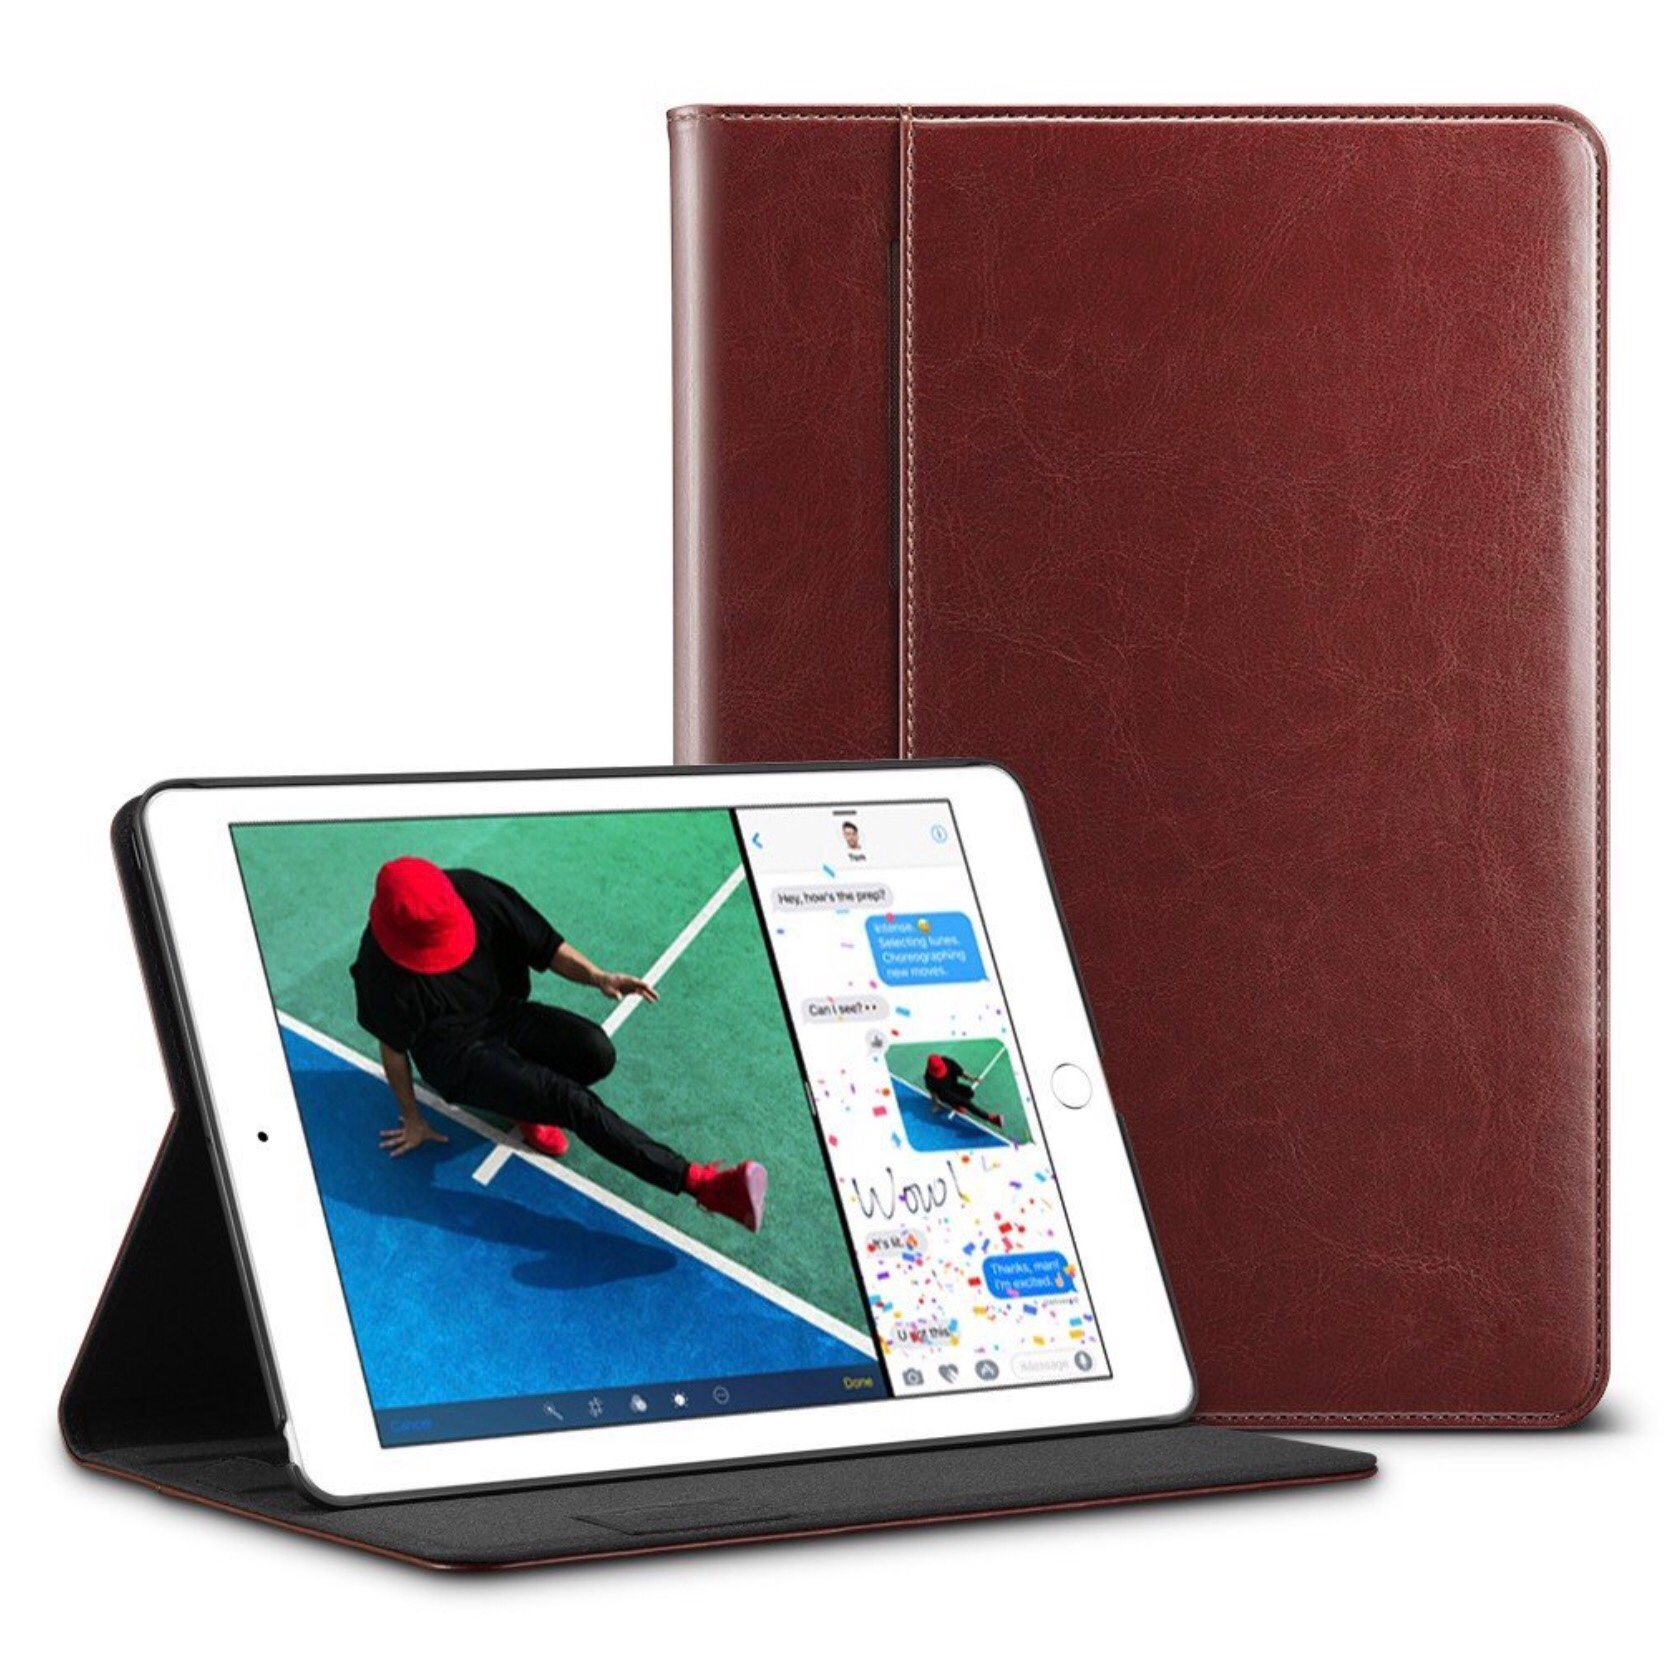 Etui Folio Protection New iPad 9.7 pouces Aspect cuir Malte Brun